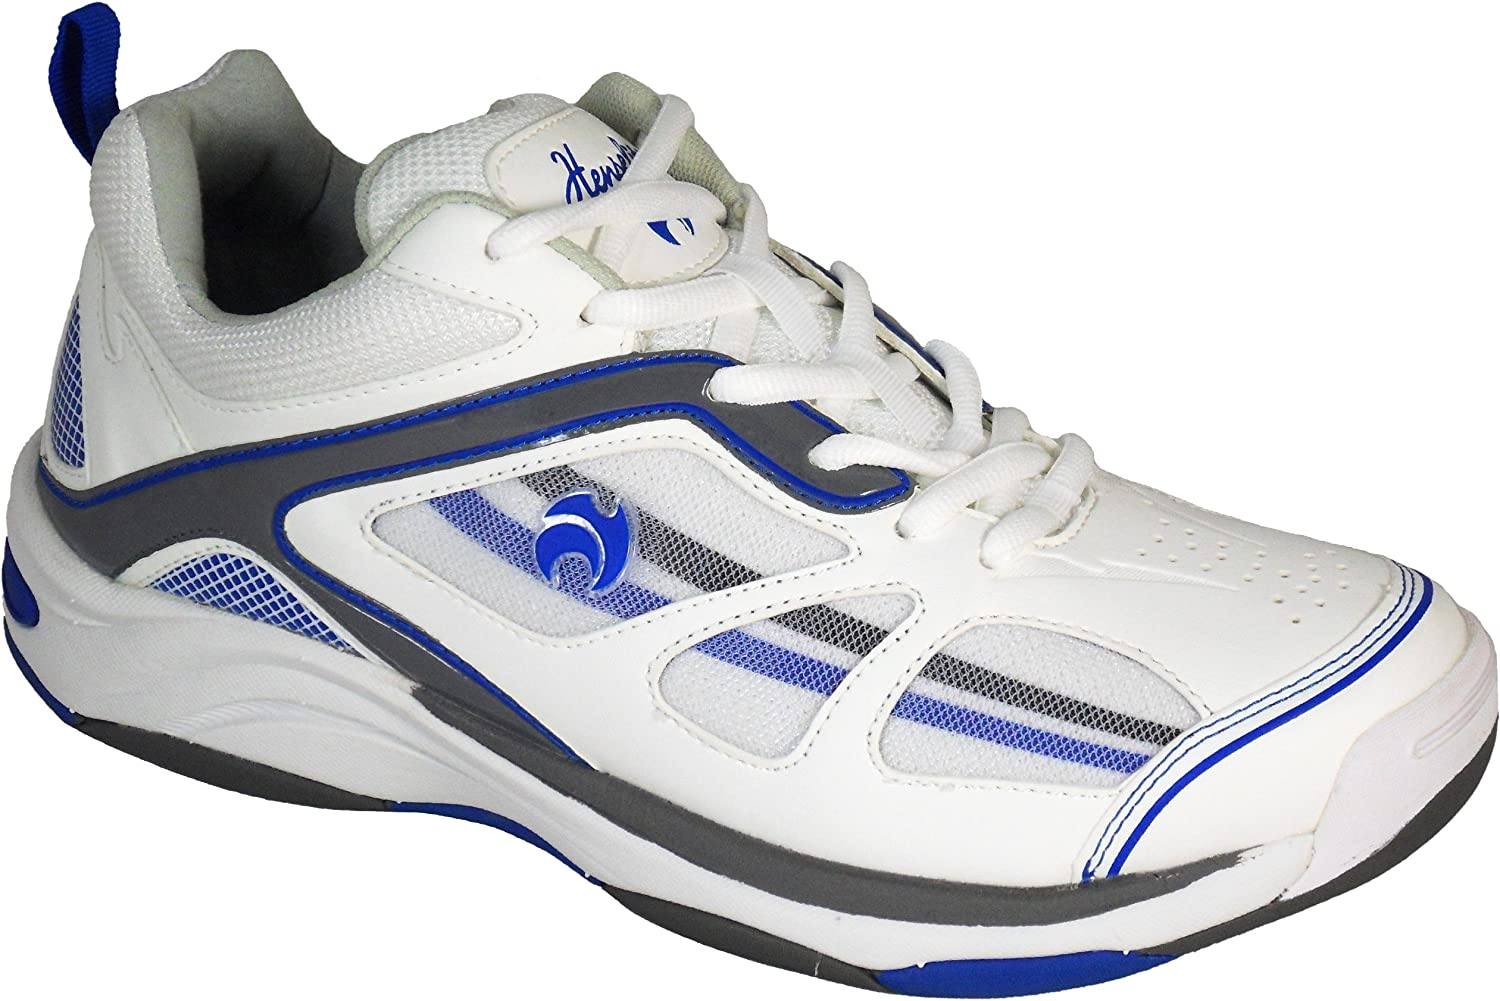 Henselite Men's MPS40 Quality Lawn Bowls shoes Trainers UK Sizes 6 to 13